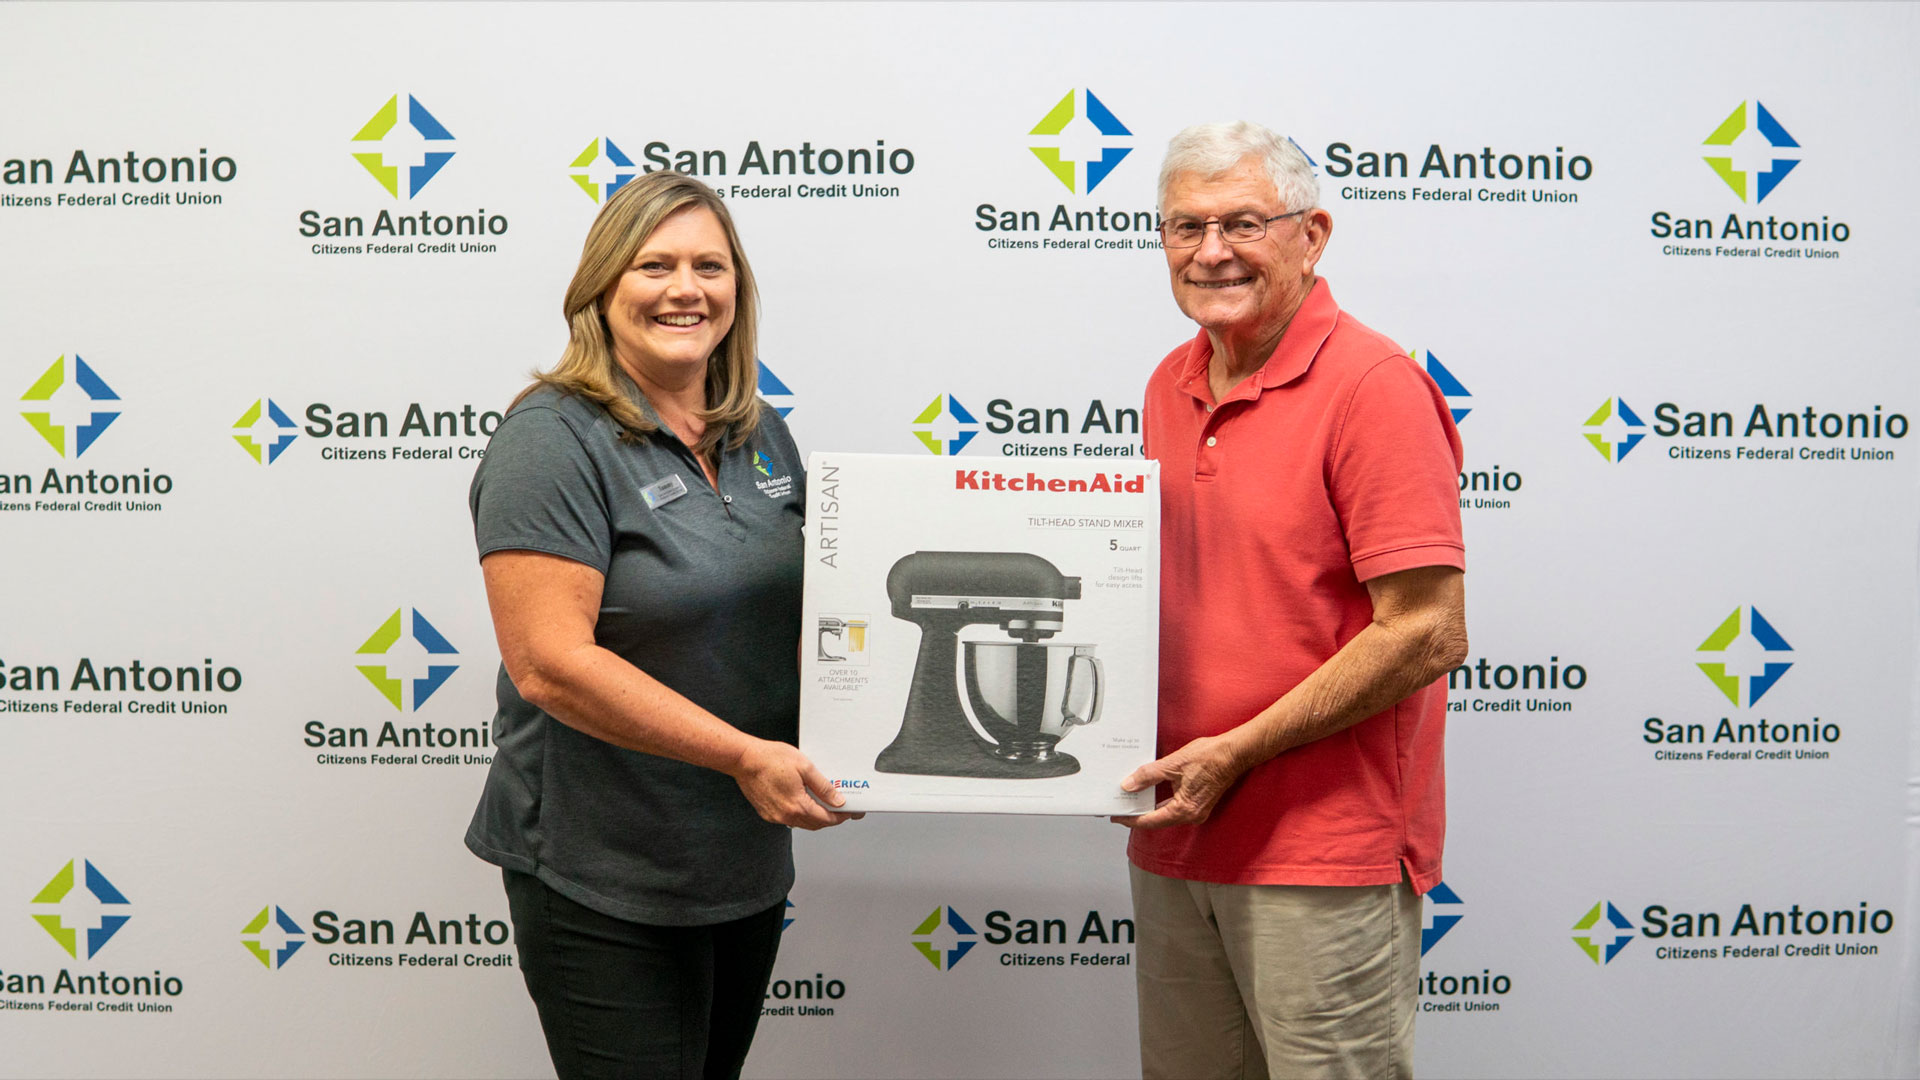 Dade City Branch Manager along with the winner of SACFCU's Mobile Banking Contest holding up the prize of a Kitchenaid Stand Mixer